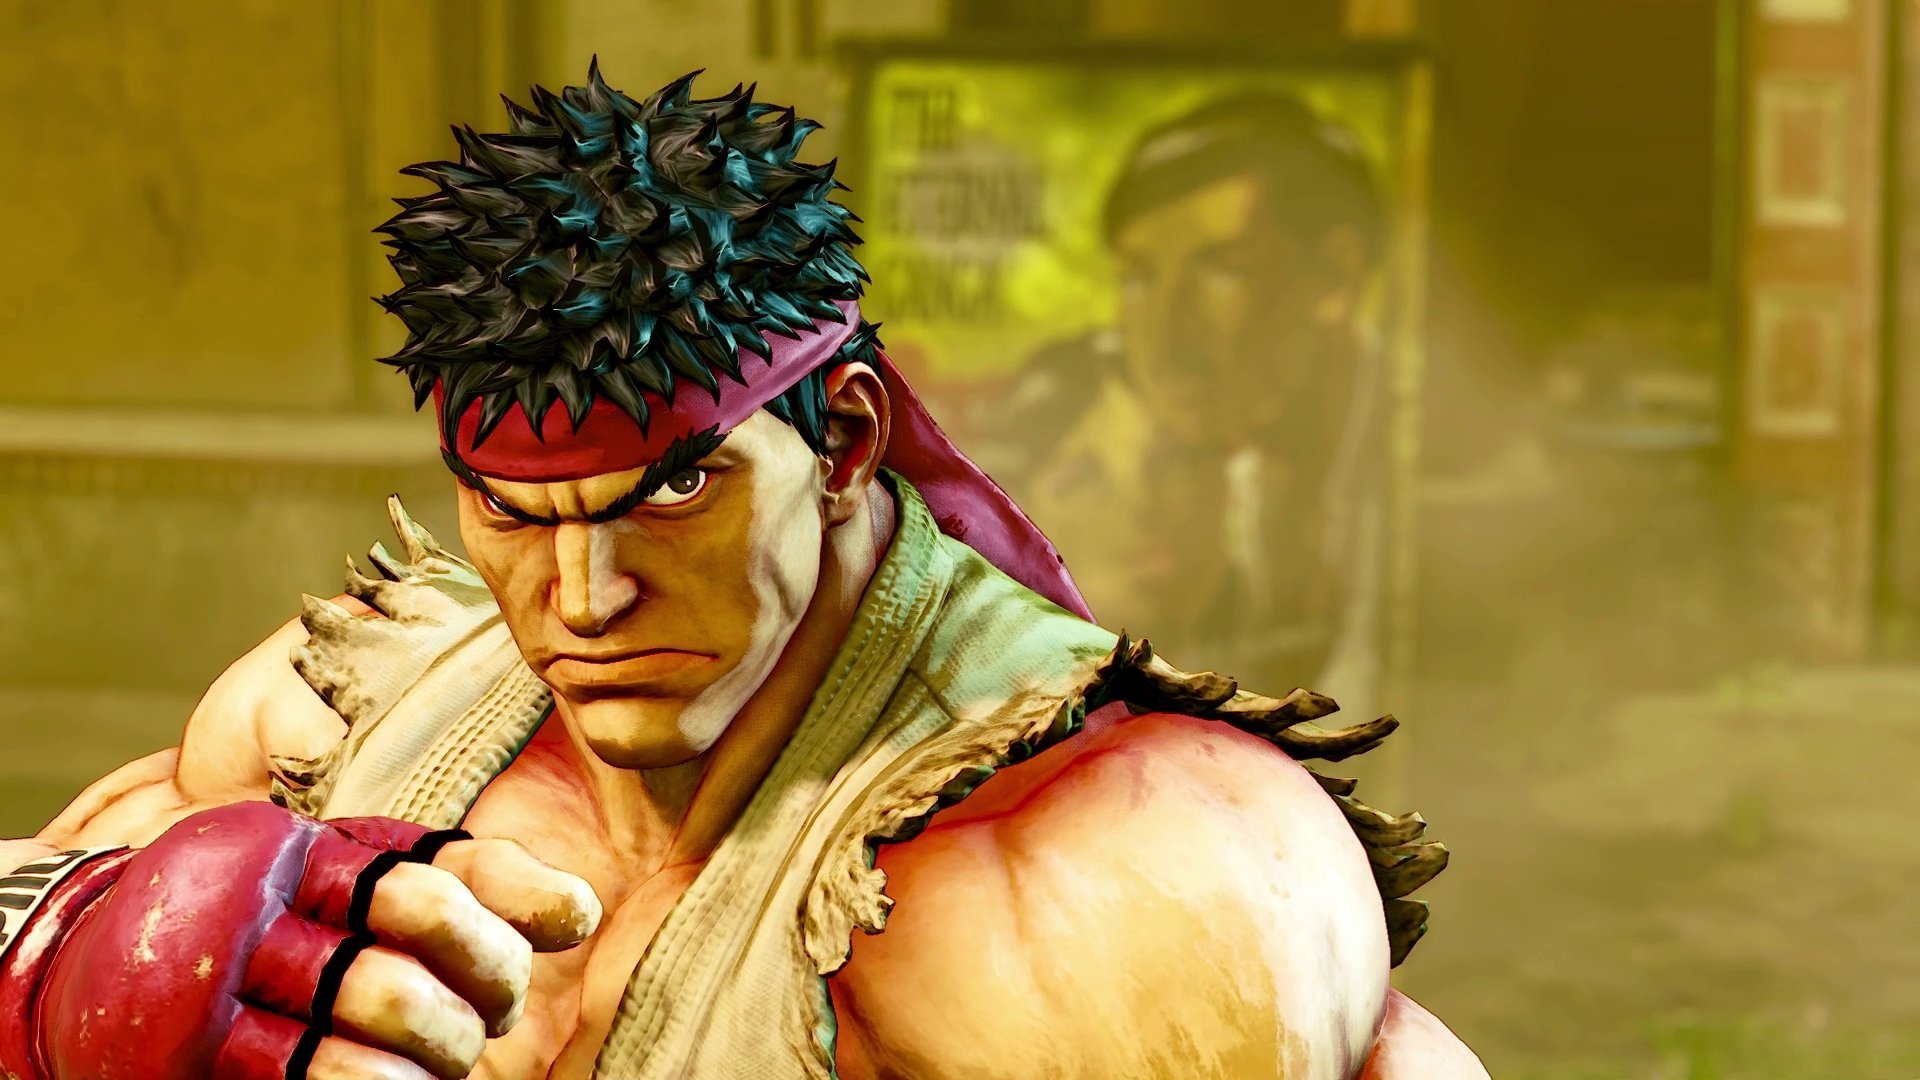 Download Full Hd 1080p Street Fighter 5 Pc Wallpaper Id 470096 For Free